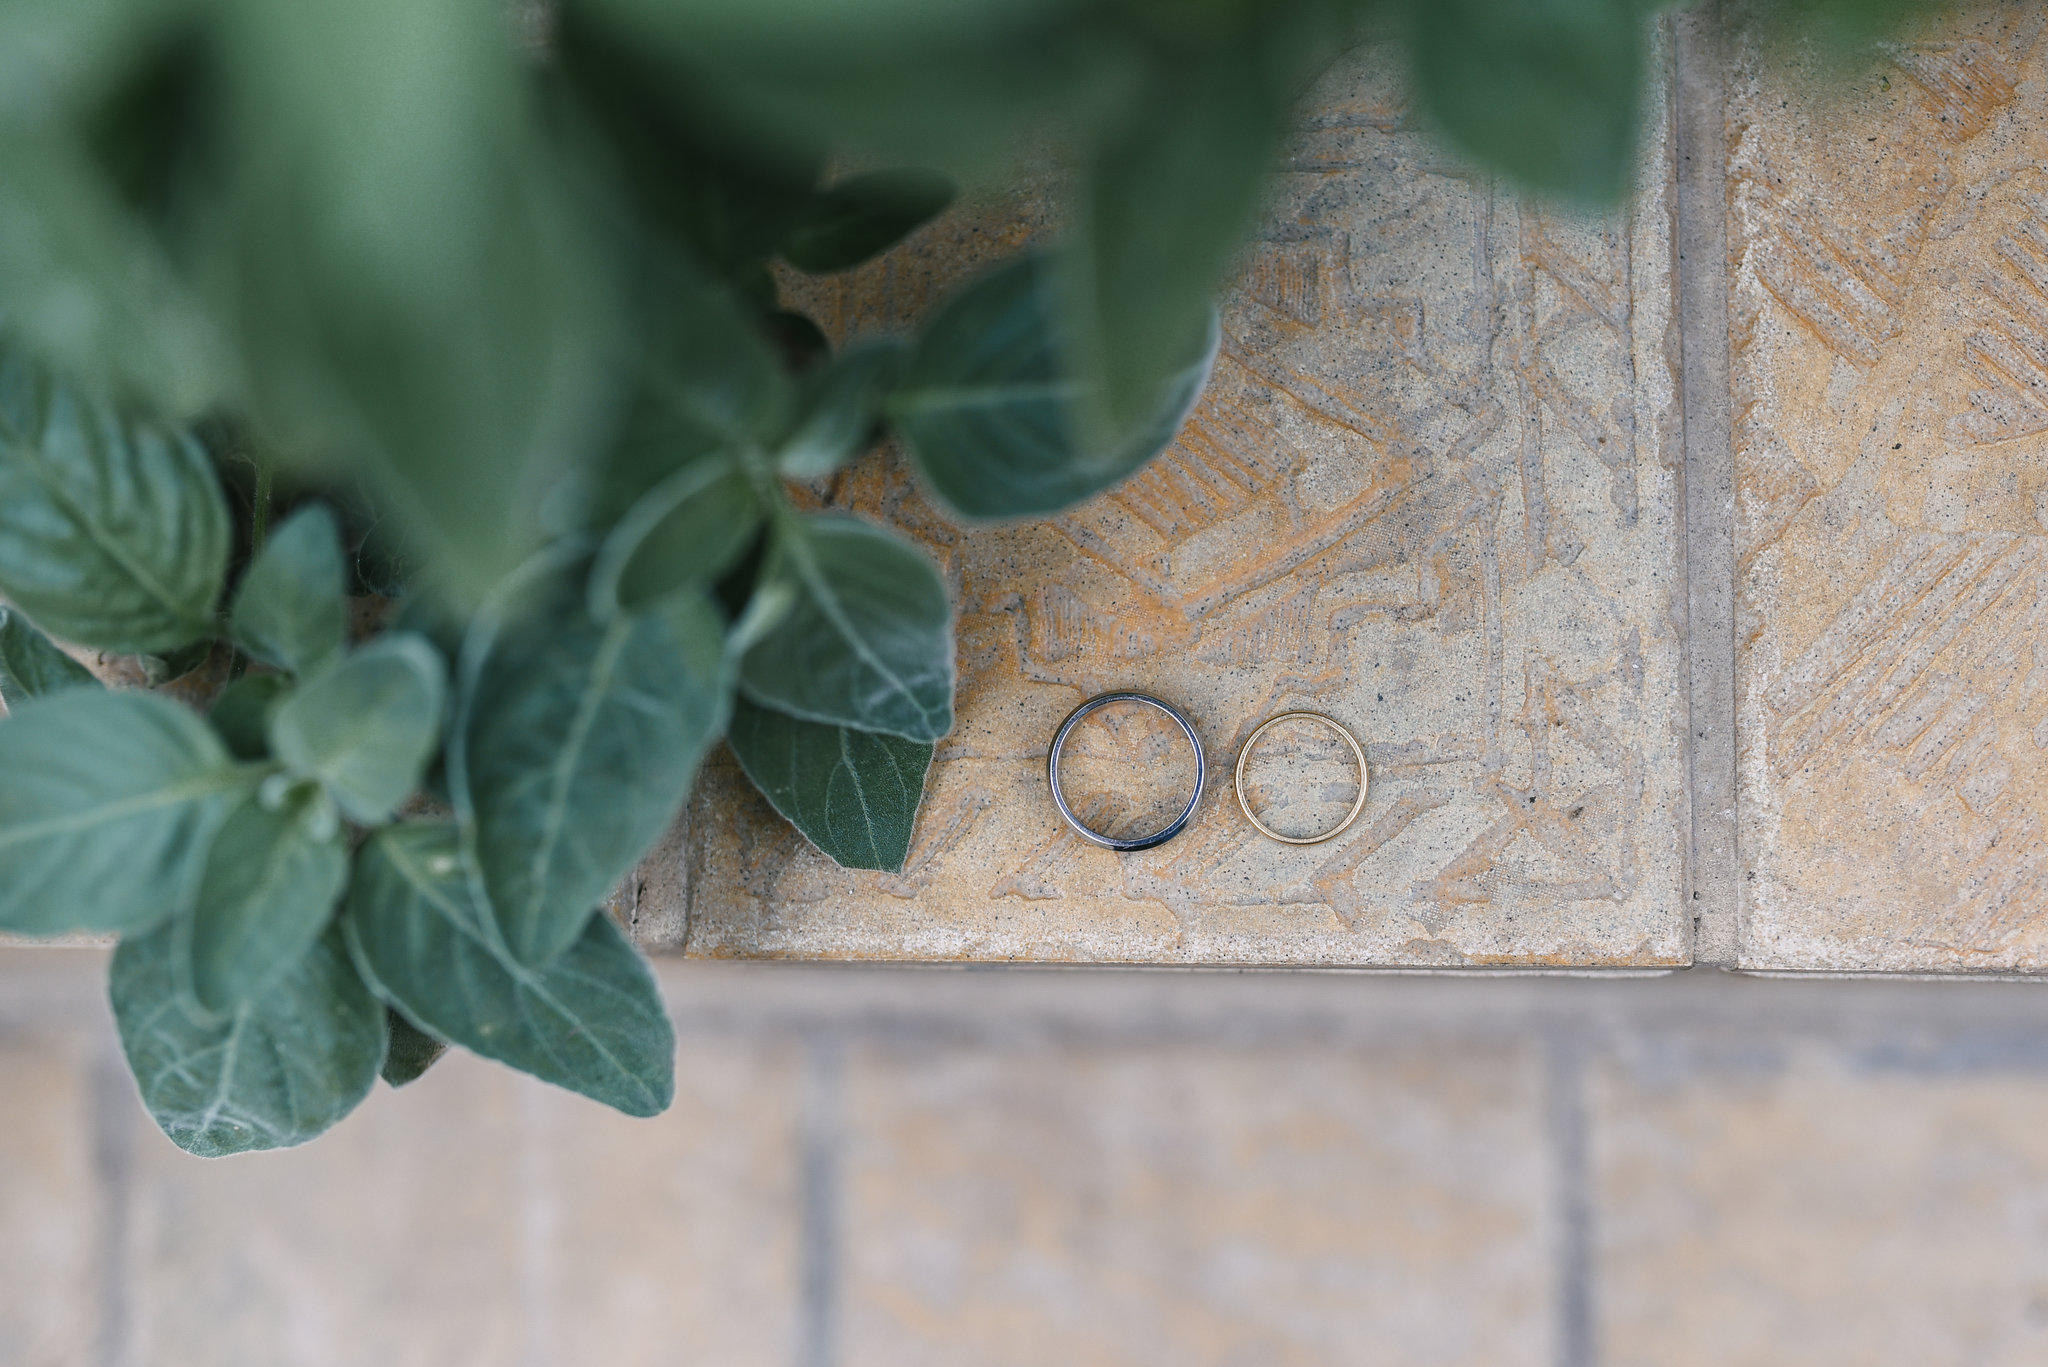 Rawlings Conservatory, Druid Hill Park, Intimate Wedding, Nature, Baltimore Wedding Photographer, Romantic, Classic, Closeup Photo of Wedding Rings